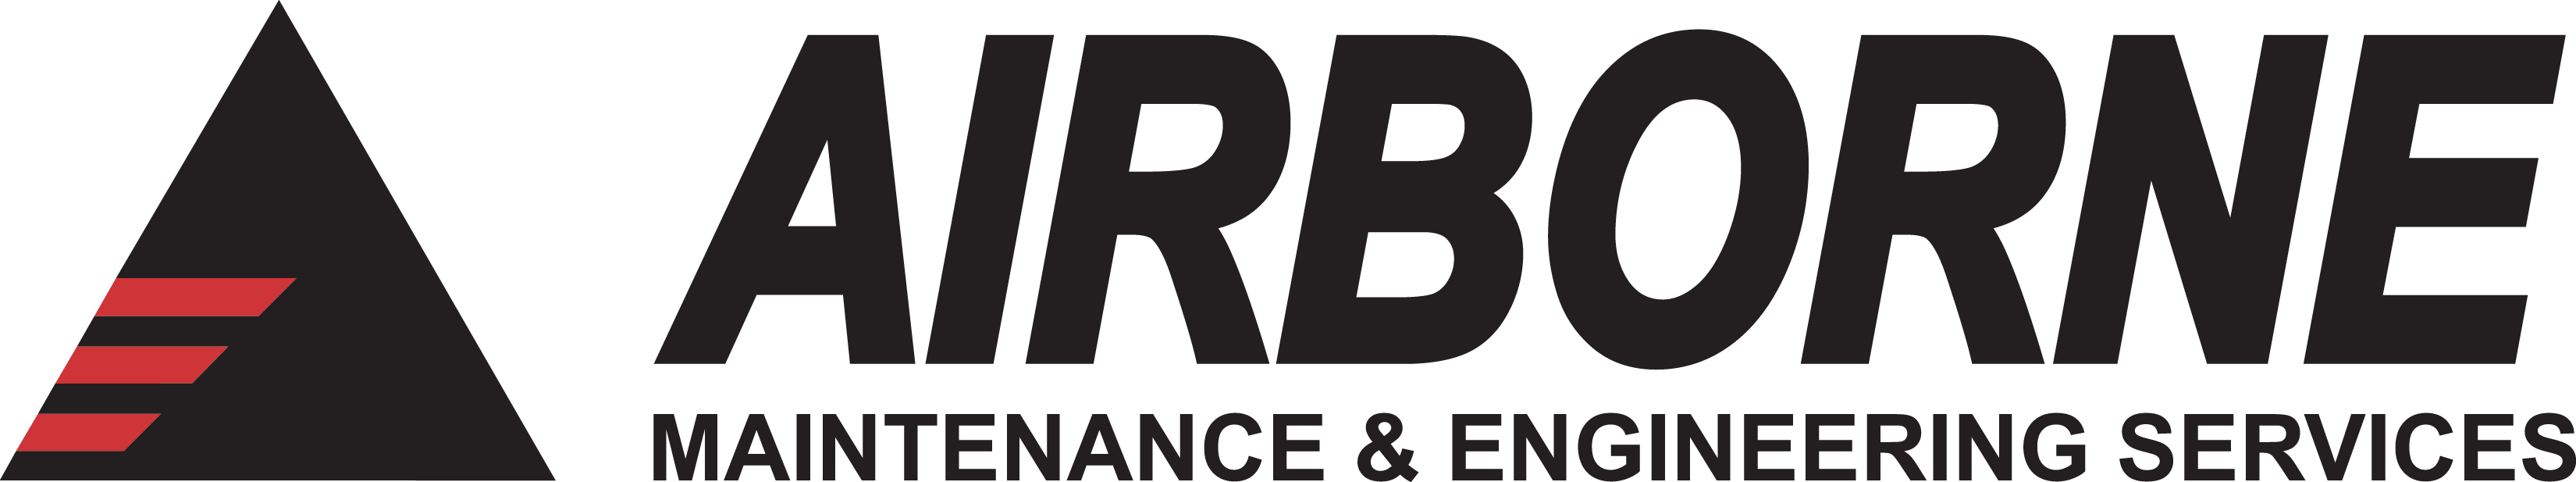 Airborne Maintenance and Engineering Services Logo